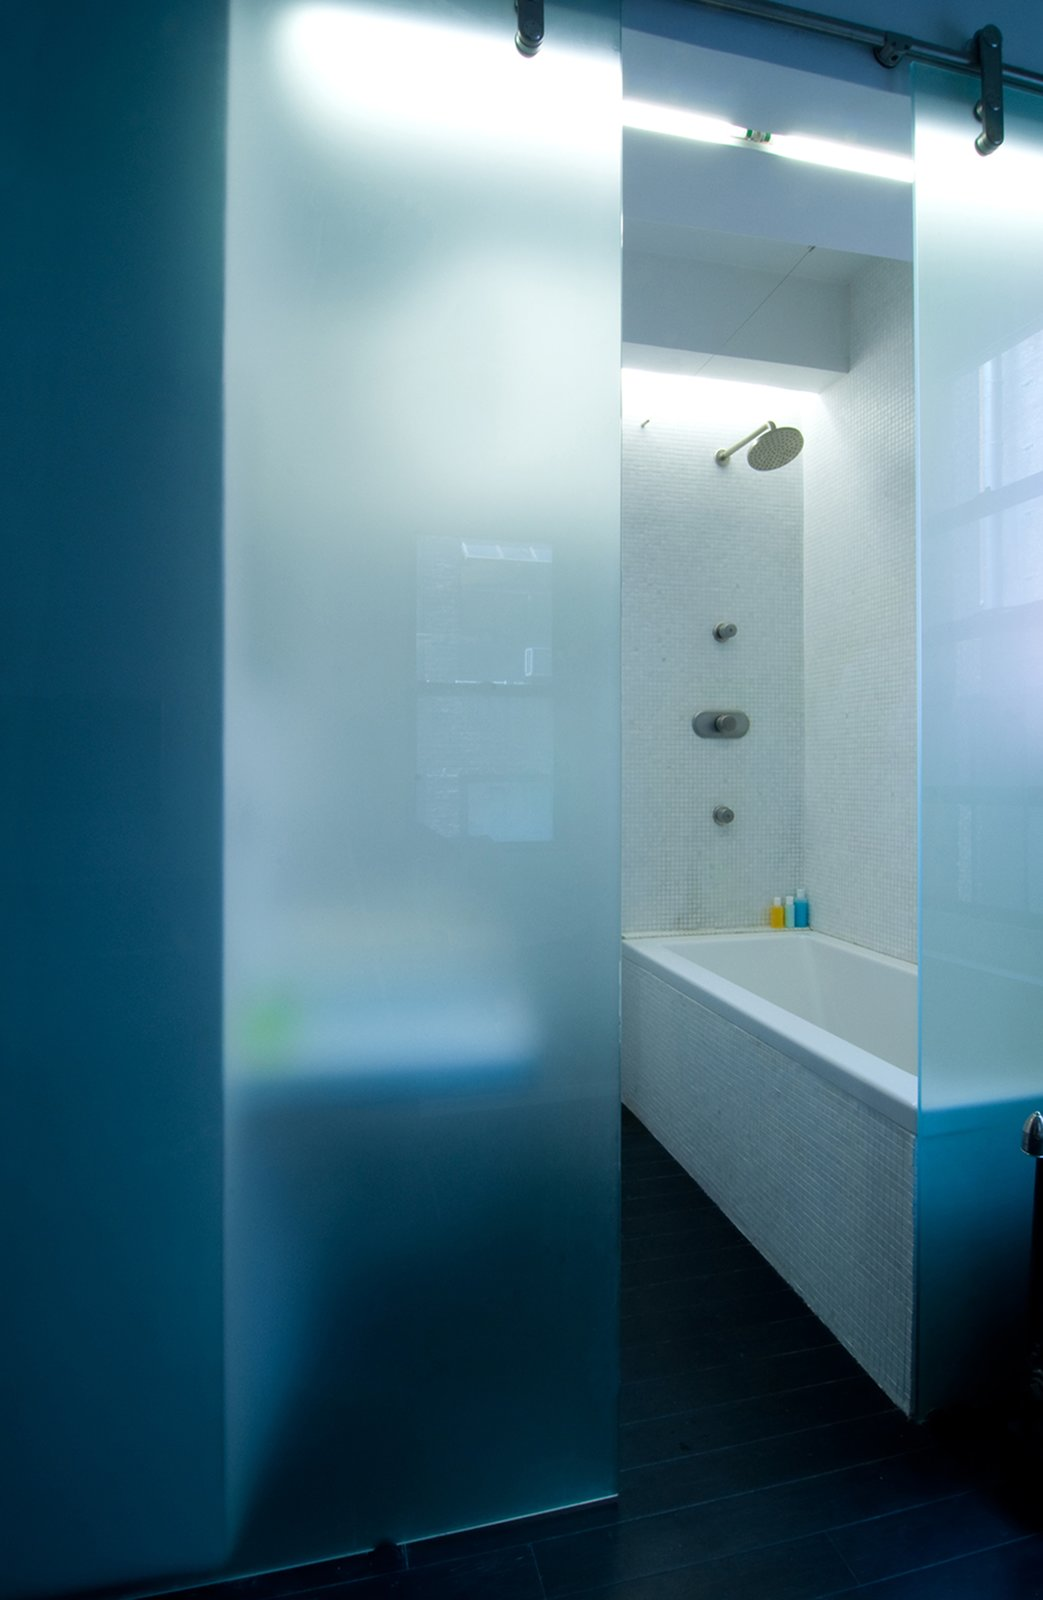 Acid-etched frosted, barn style- sliding glass panel Tagged: Bath Room, Drop In Tub, Open Shower, and Mosaic Tile Wall.  Park Avenue Studio by Ajay Chopra